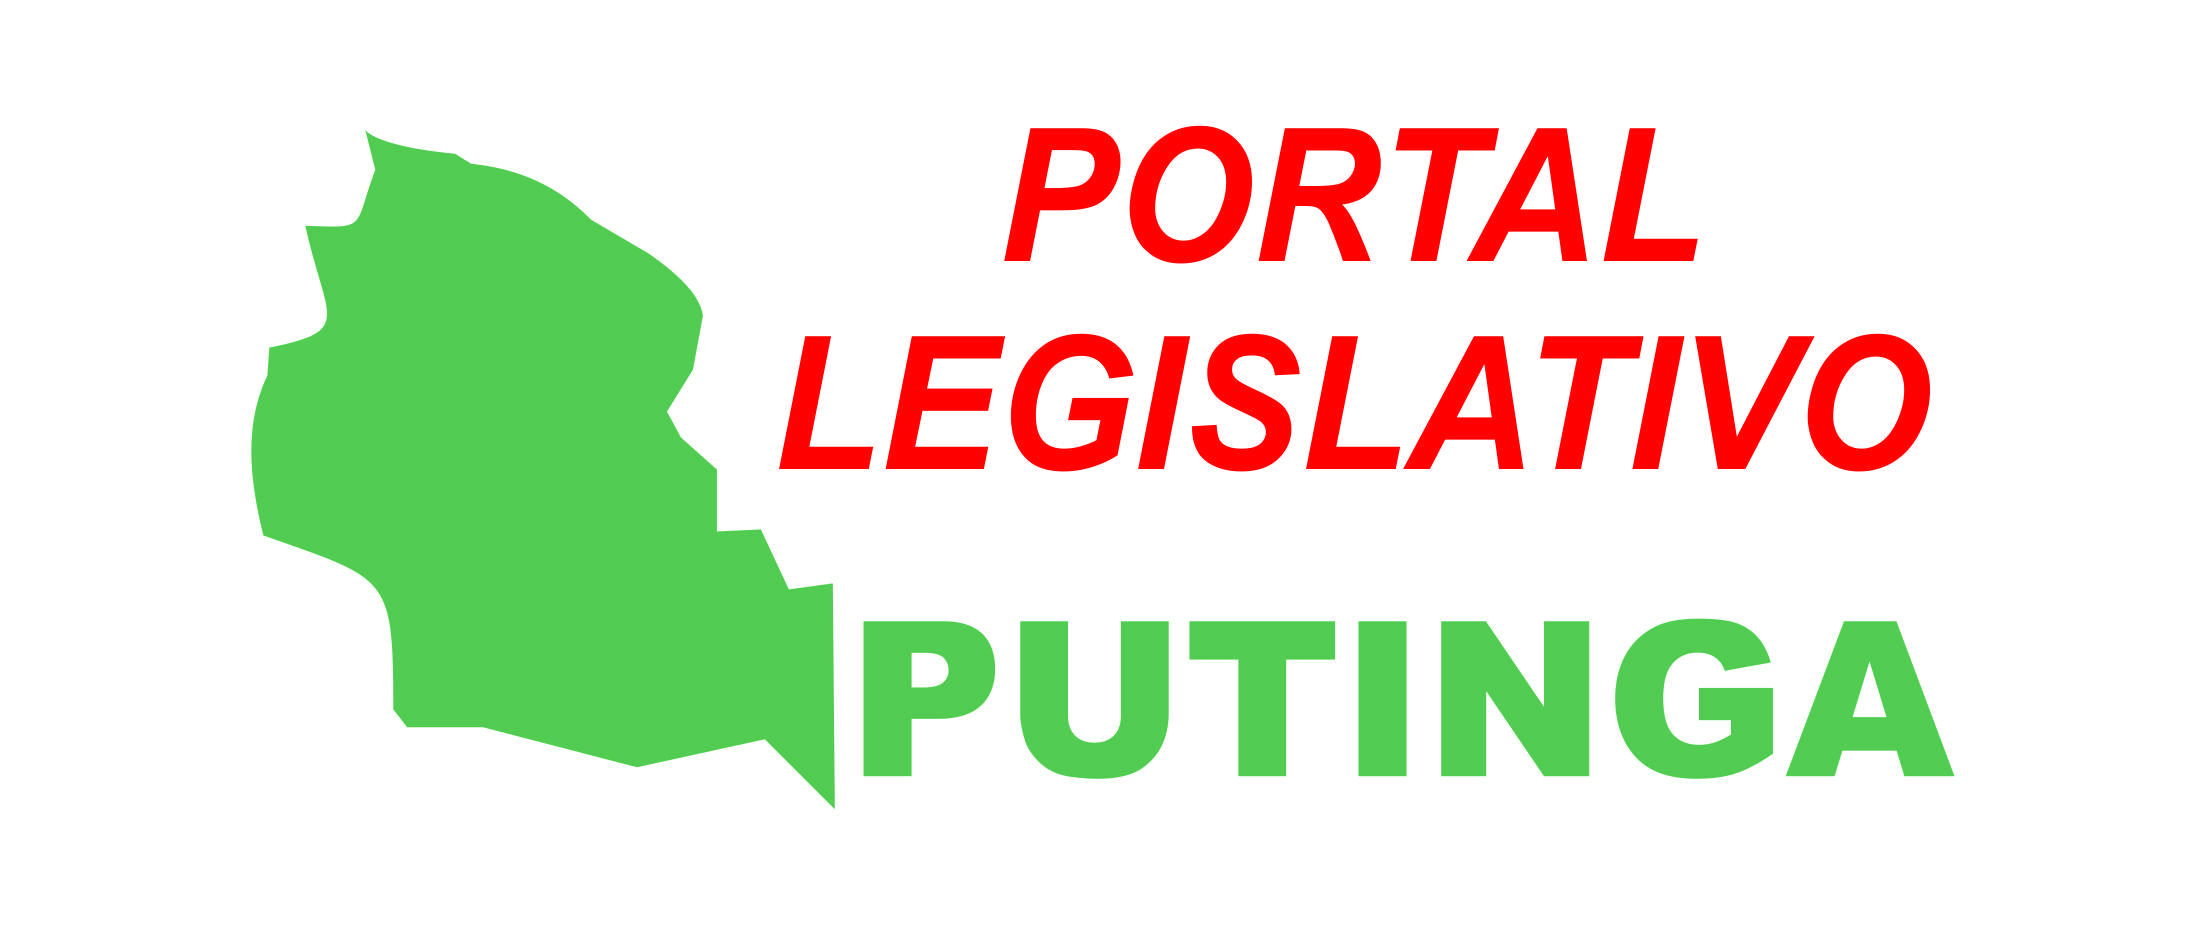 PORTAL LEGISLATIVO PUTINGA RS 1